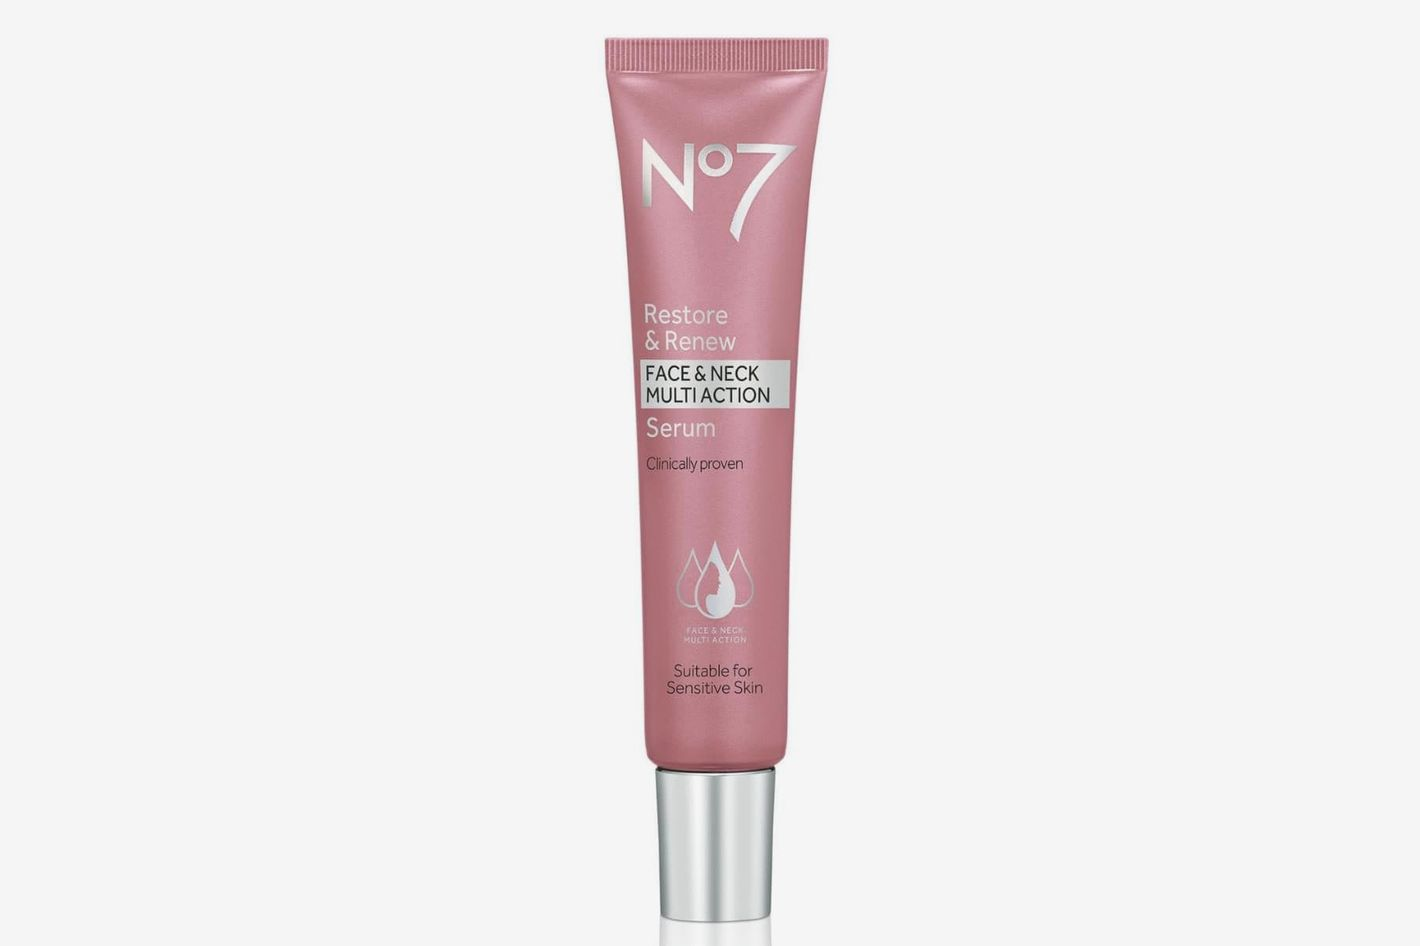 No. 7 Restore & Renew Multi Action Serum